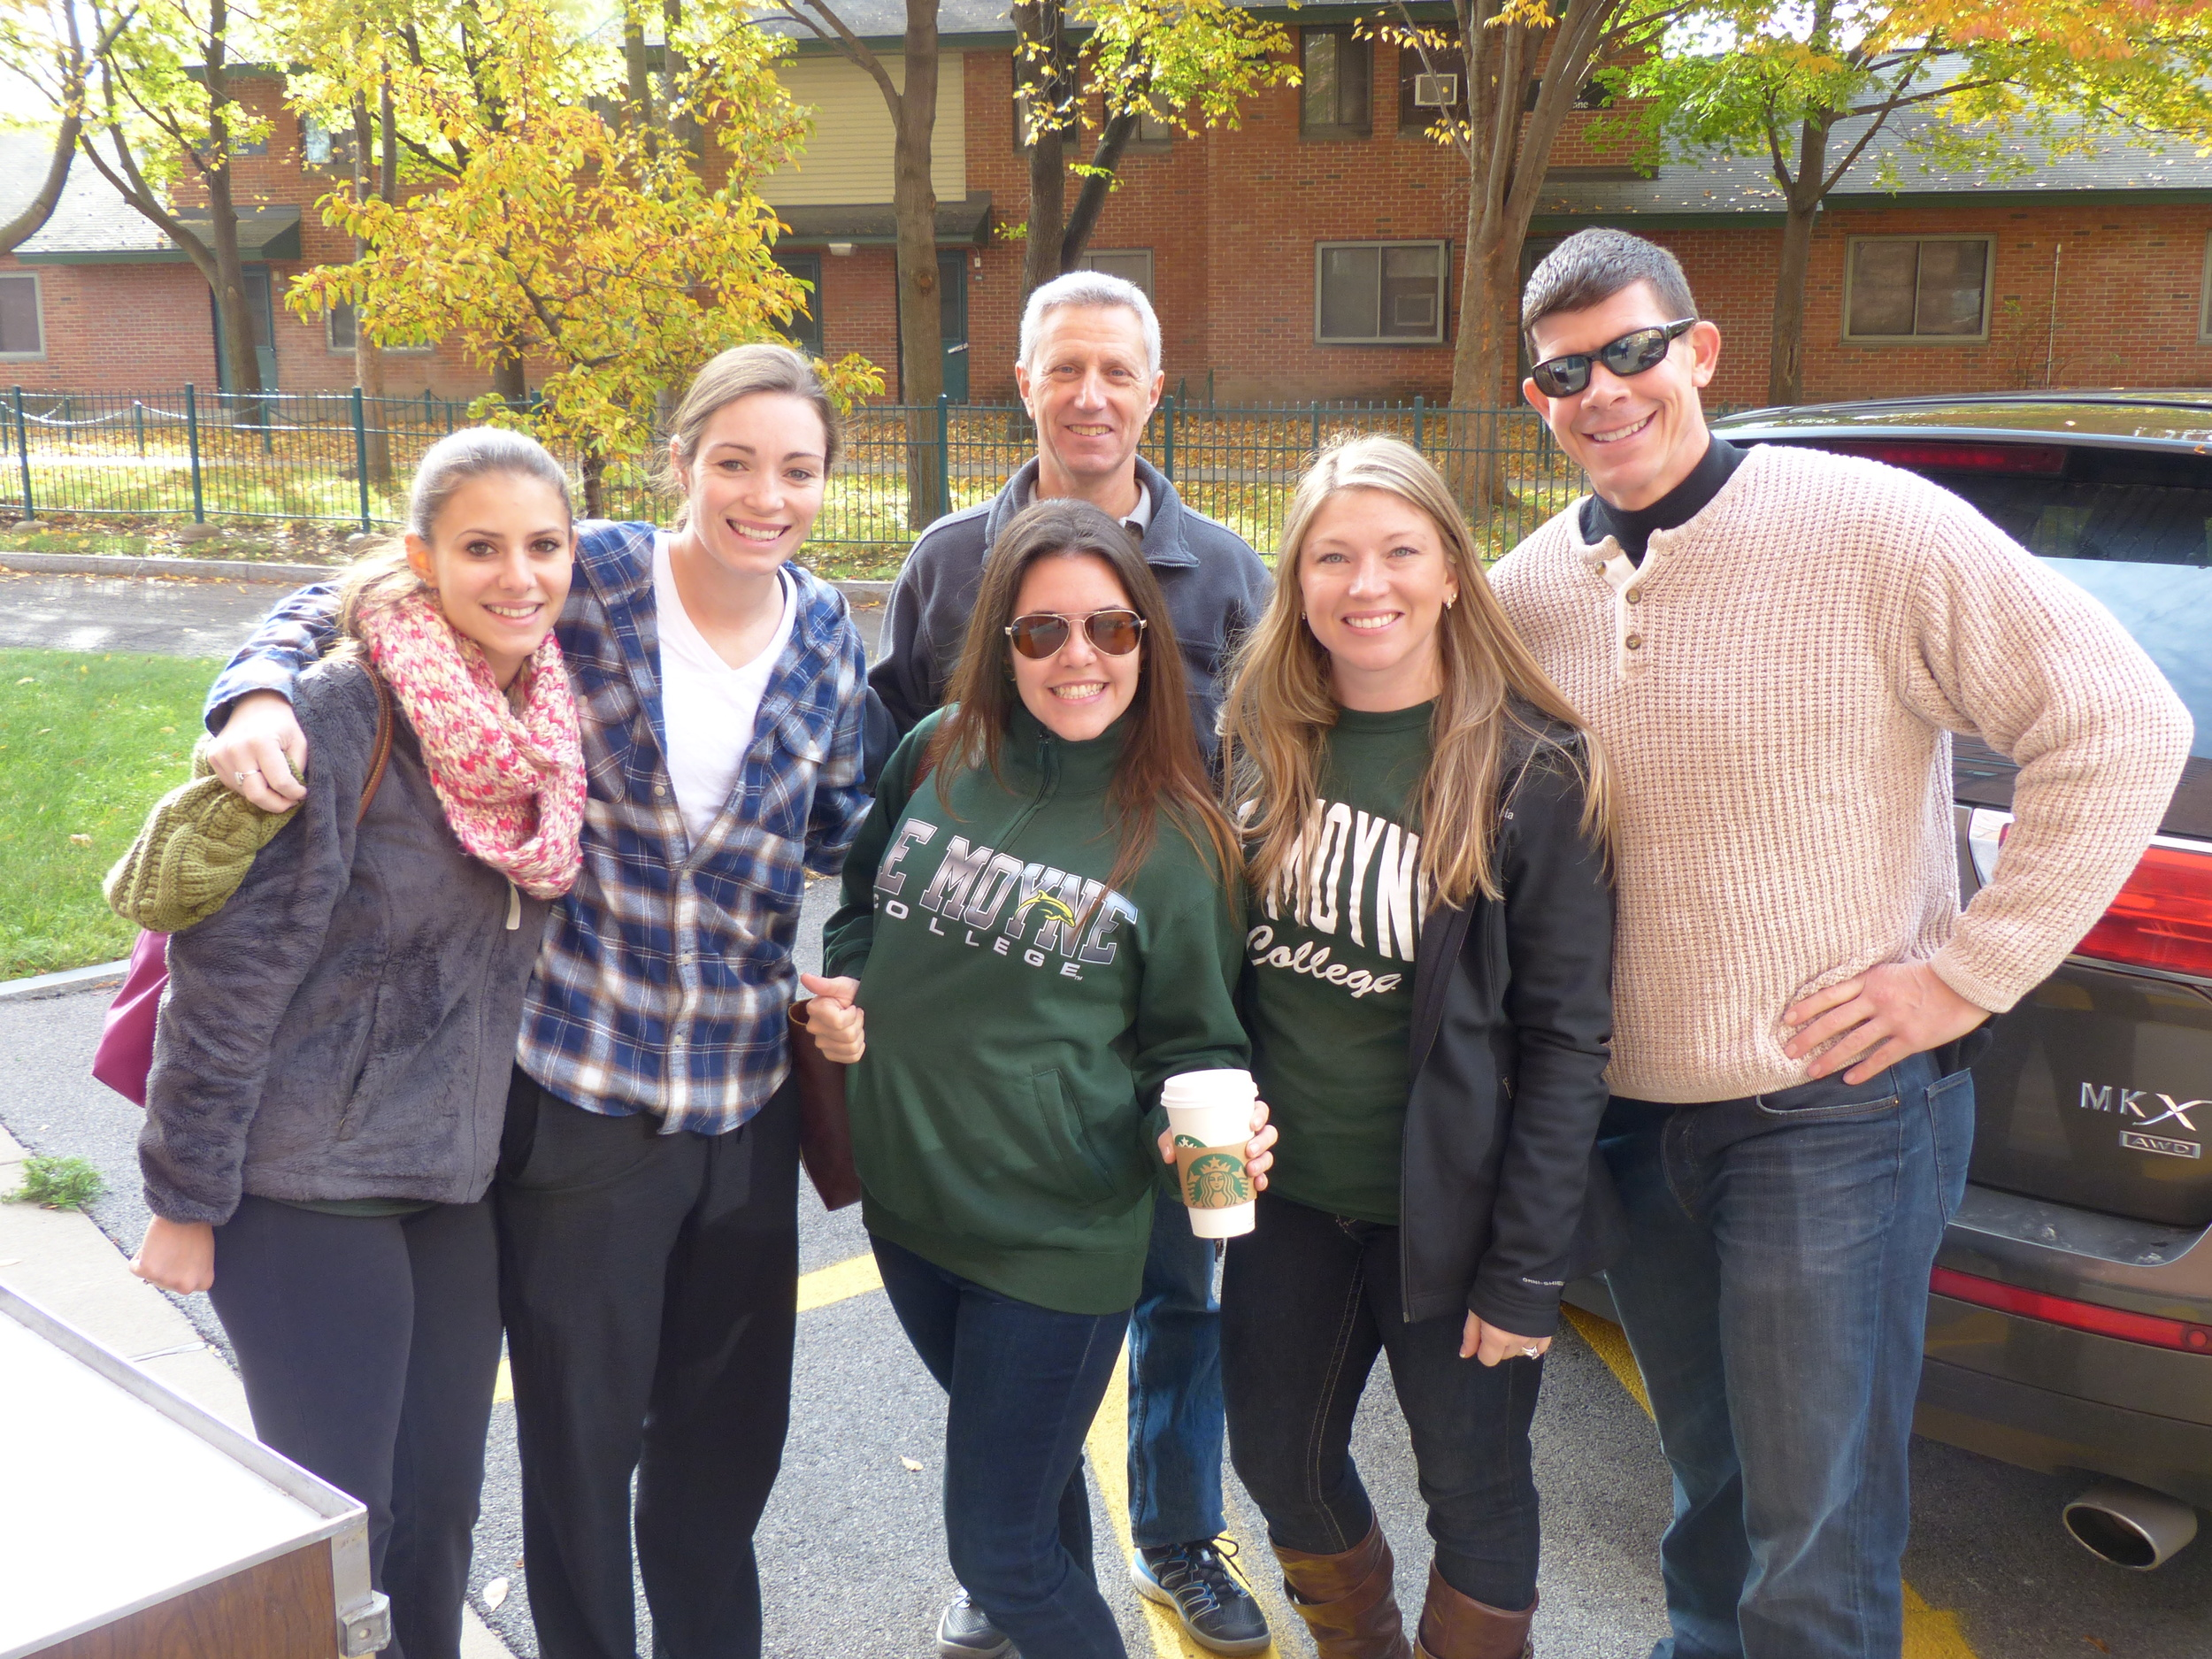 Le Moyne College students and Mason Kaufman, Meals on Wheels Executive Director (back)